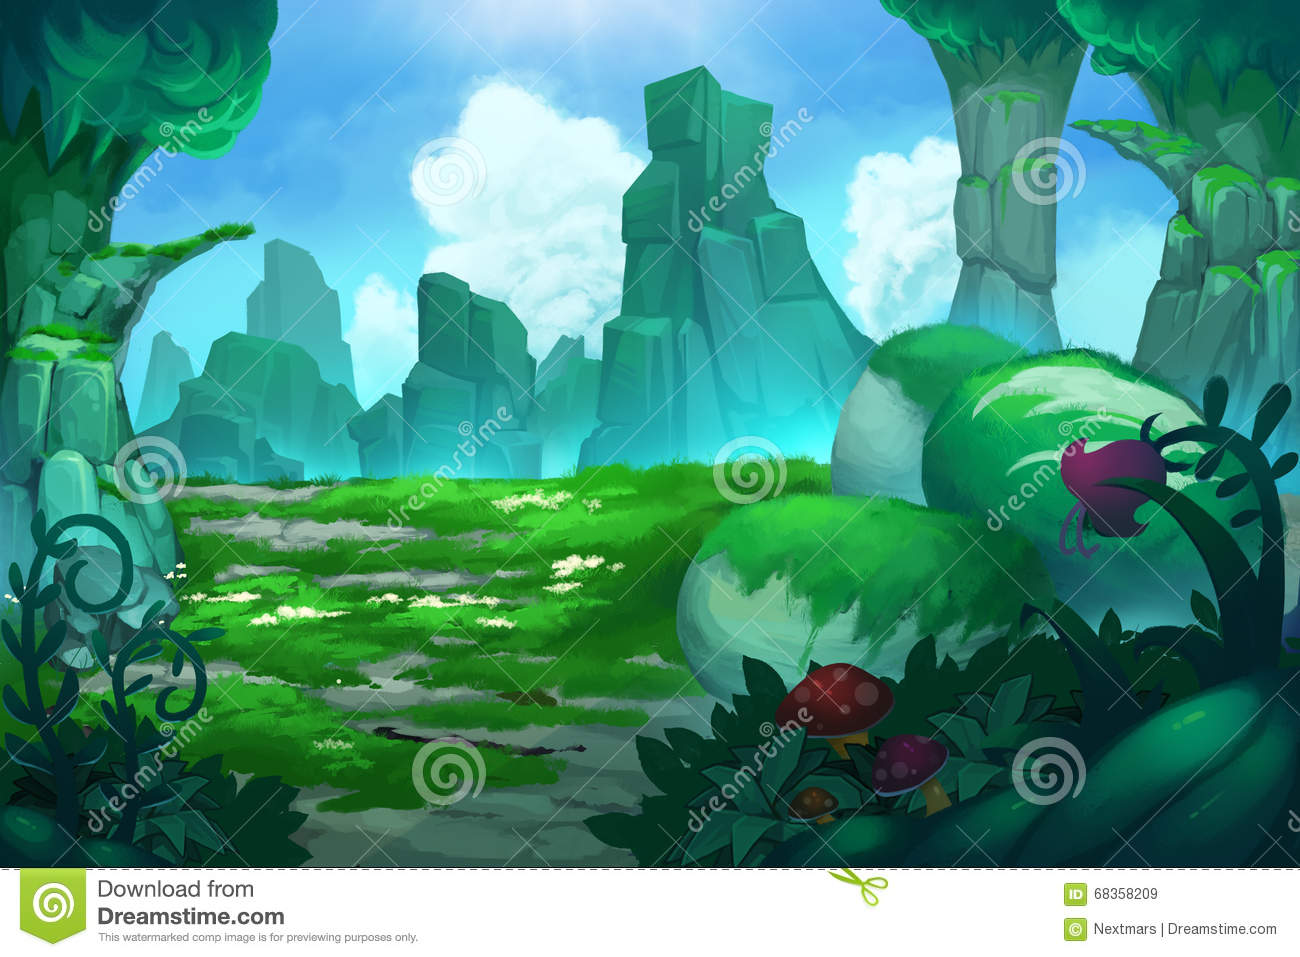 Good Wallpaper Mountain Cartoon - illustration-mysterious-mountain-valley-realistic-fantastic-cartoon-style-artwork-story-scene-wallpaper-background-card-design-68358209  Photograph_249369.jpg